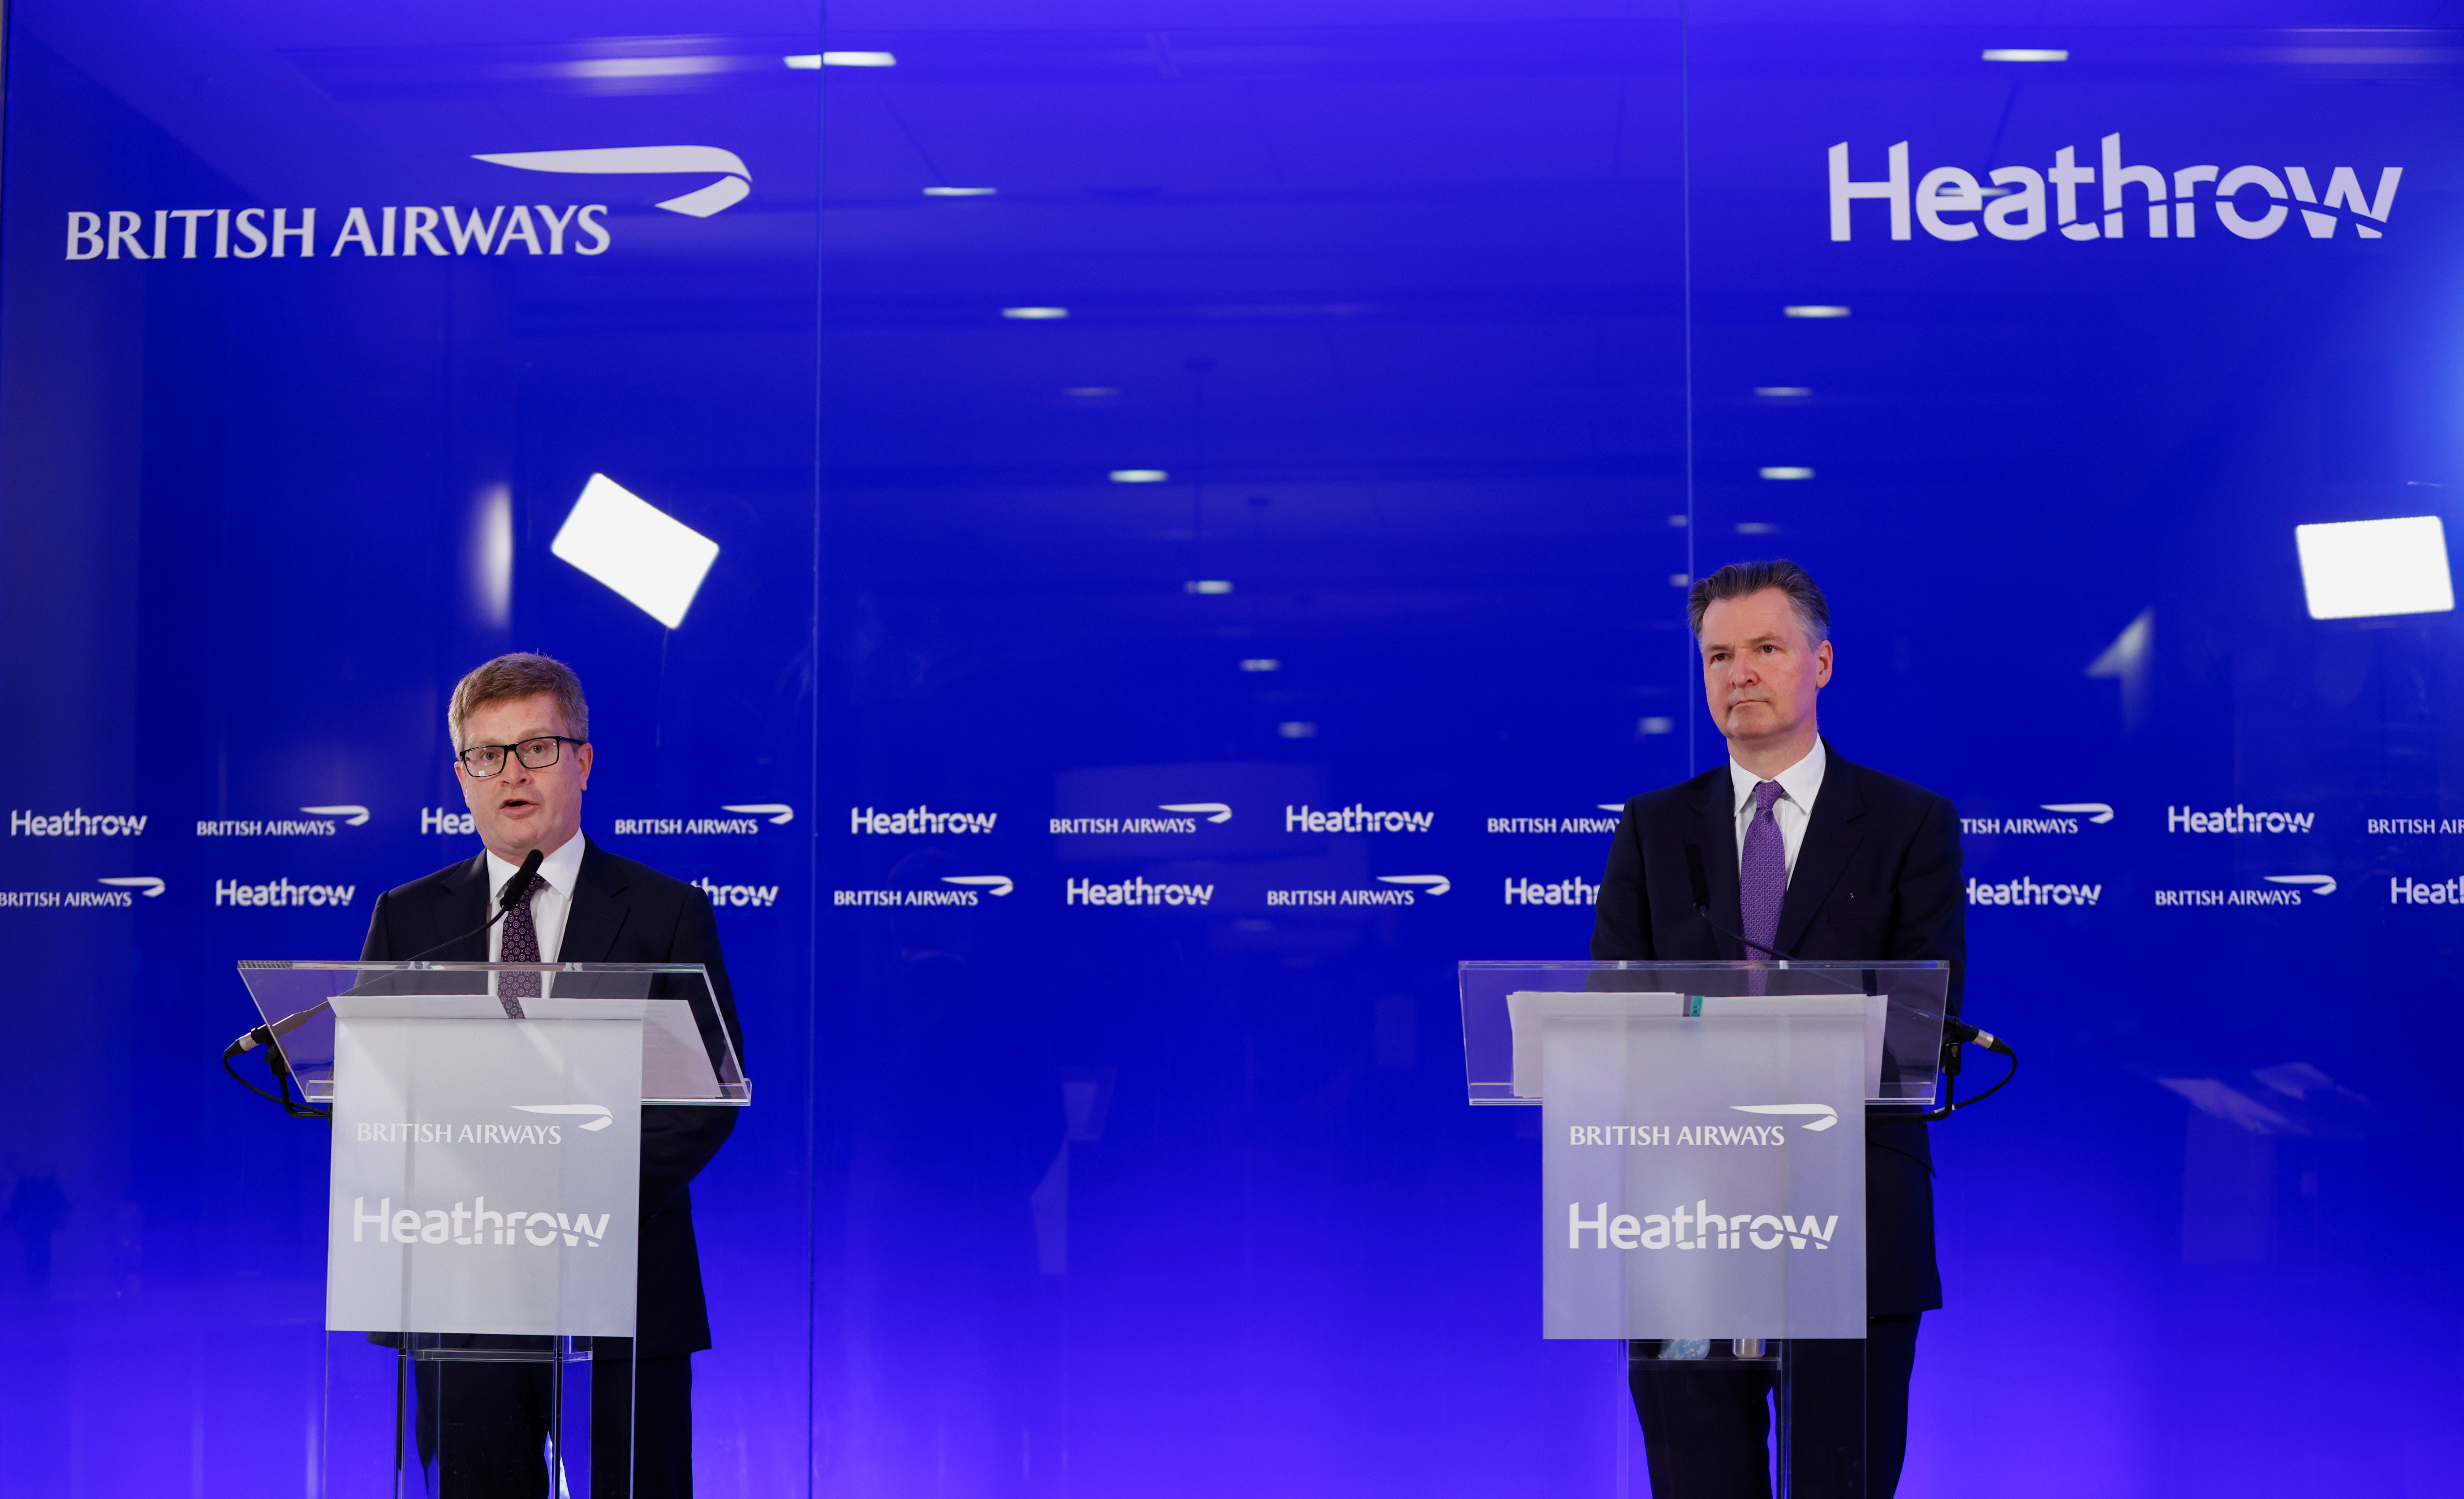 Heathrow Airport CEO John Holland-Kaye and British Airways CEO Sean Doyle hold a joint news conference at Heathrow Airport in London, Britain, May 17, 2021. REUTERS/John Sibley